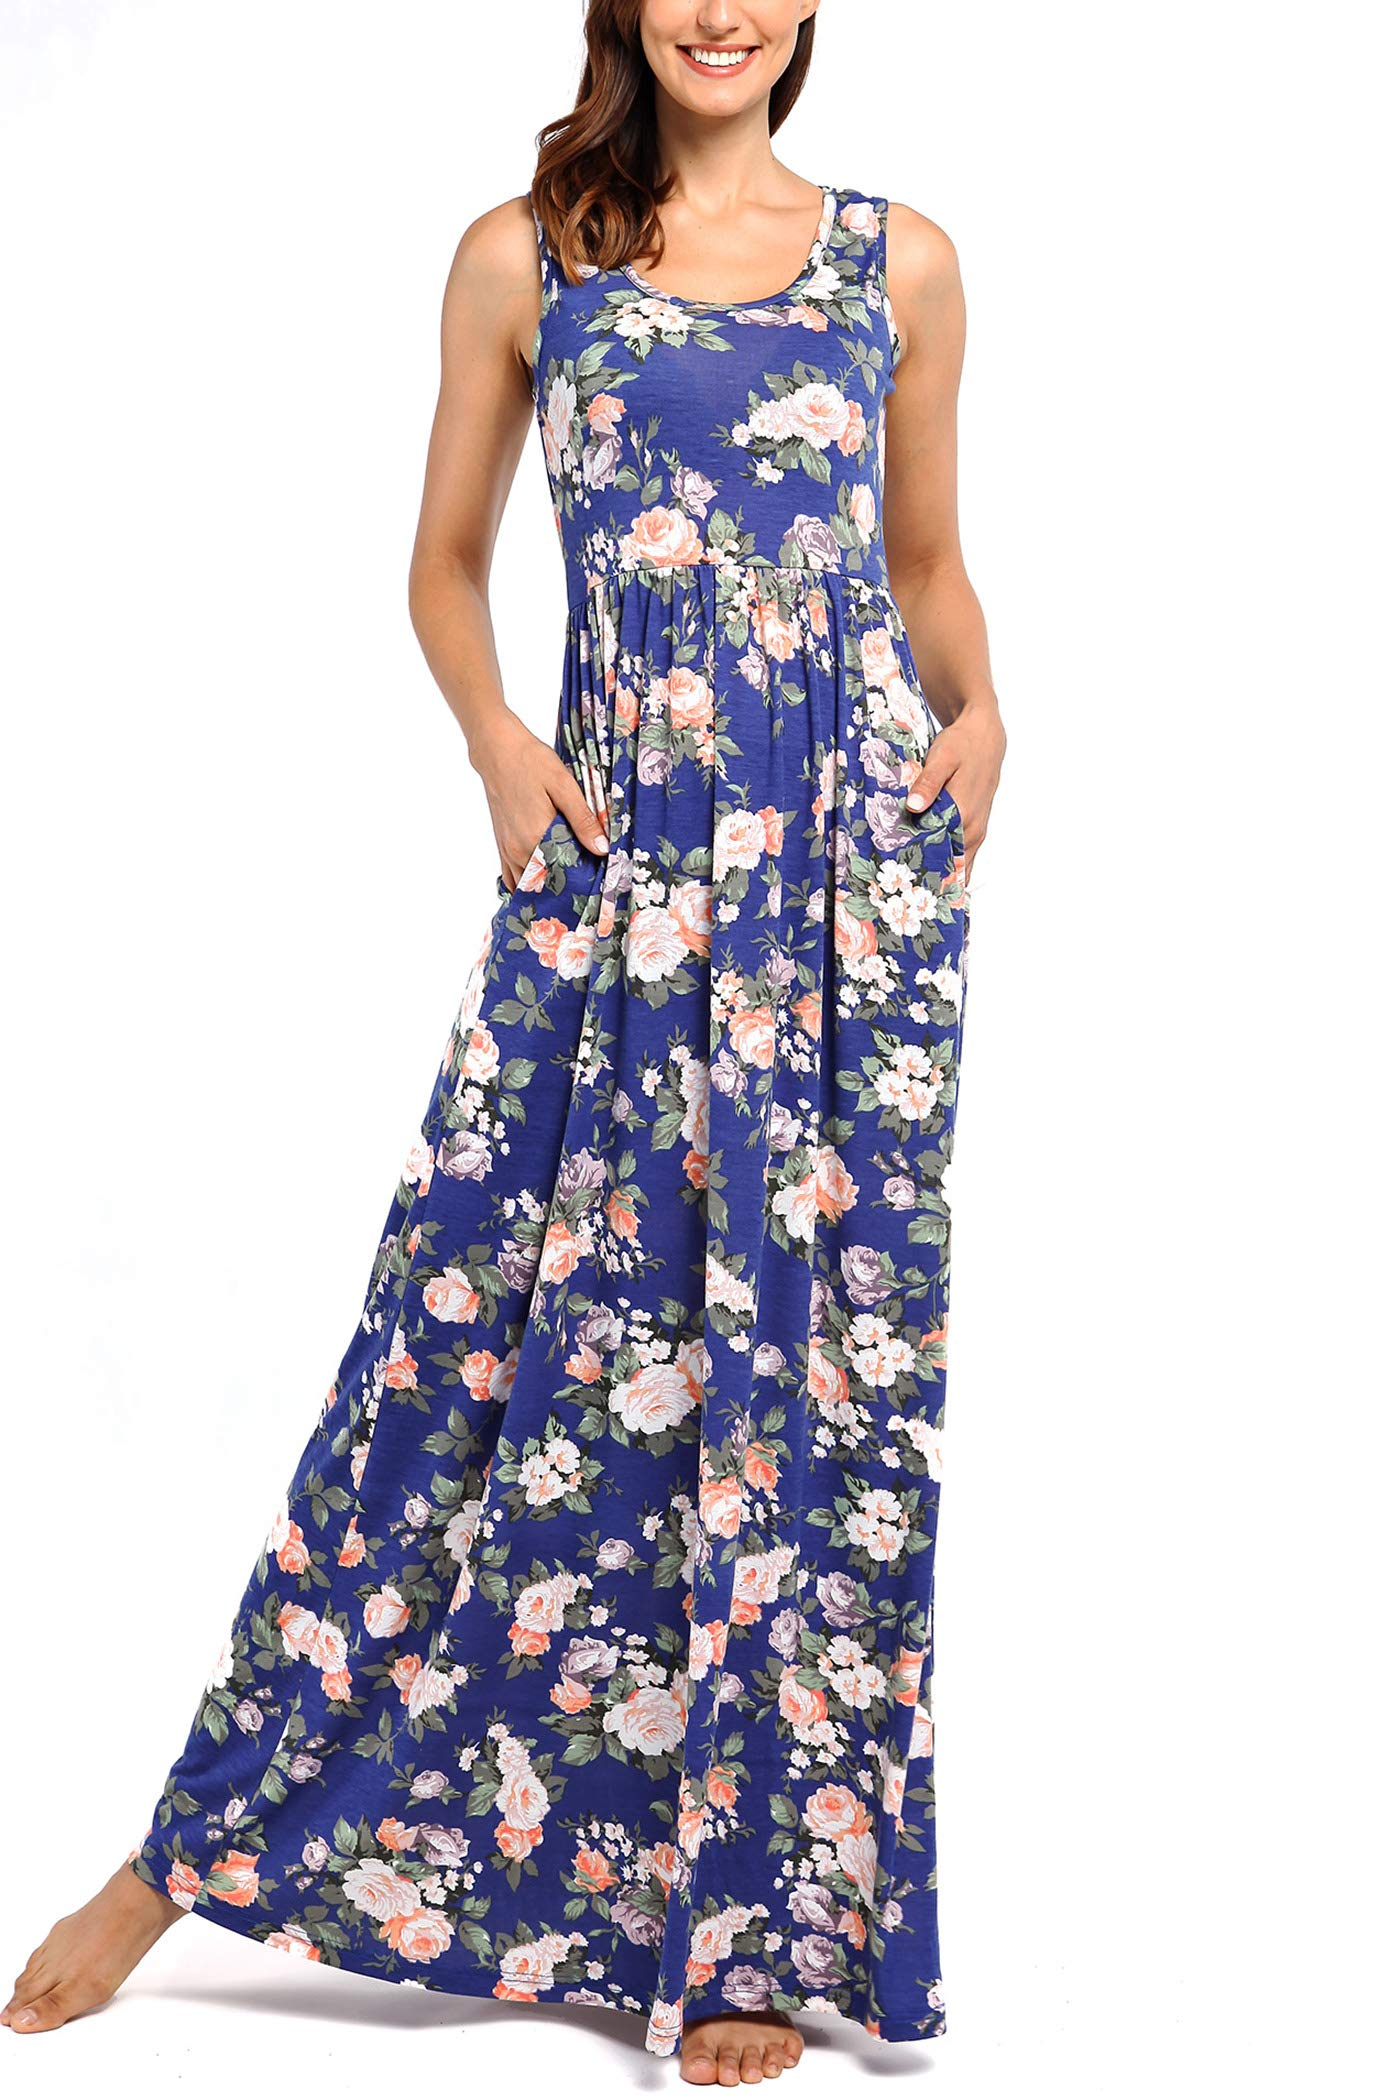 Comila Women's Summer Sleeveless Floral Tank Maxi Dress Casual Long Dress Pocket